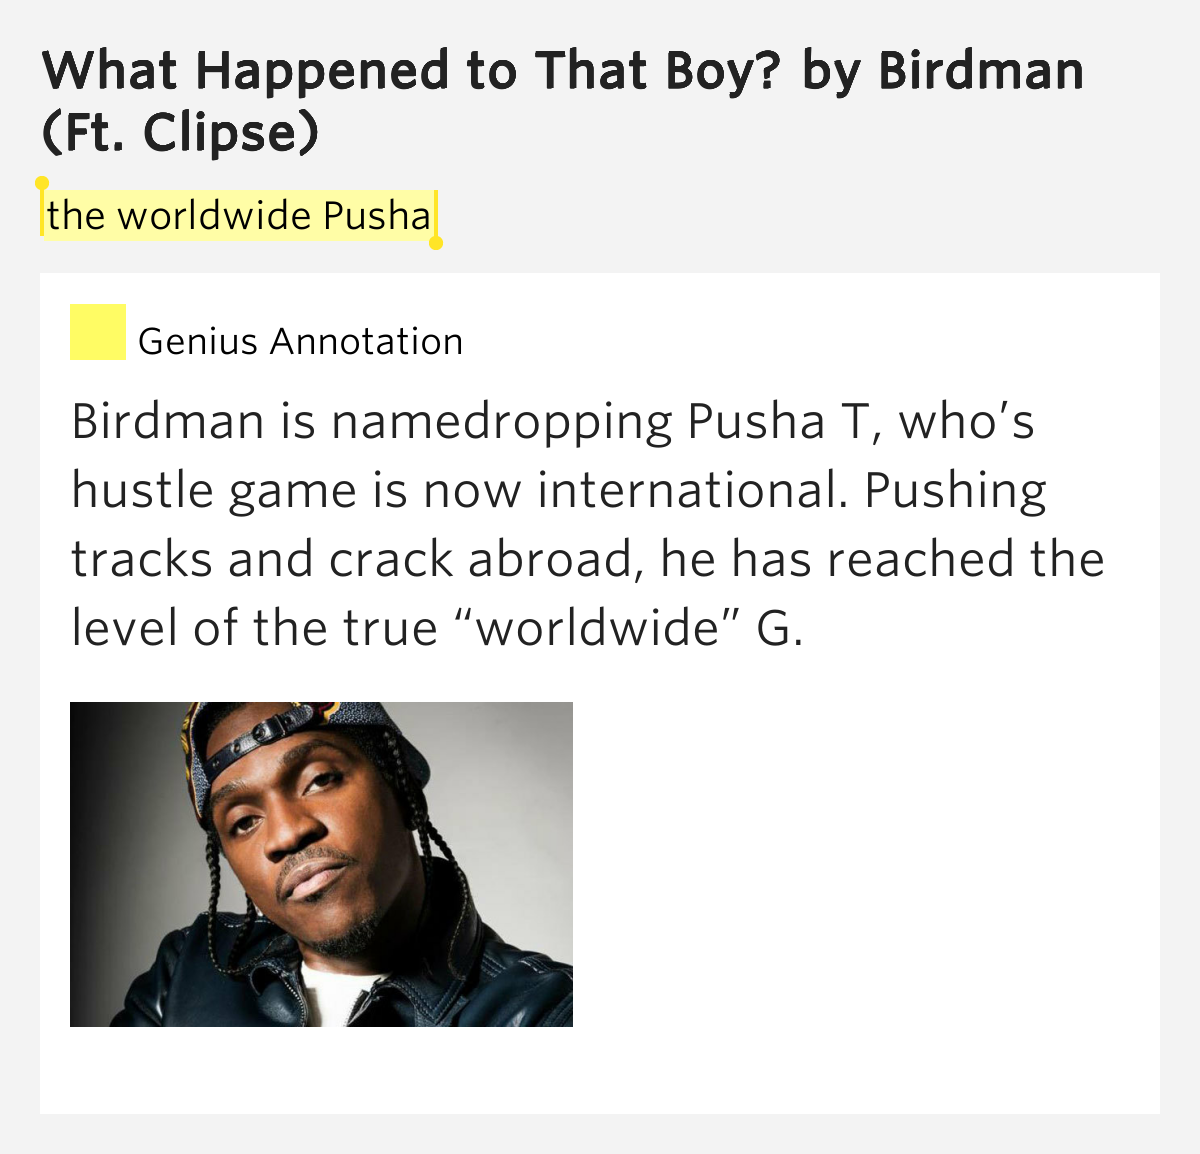 Chord Birdman Ft Clipse What Happened That Youtube Mp3 ...